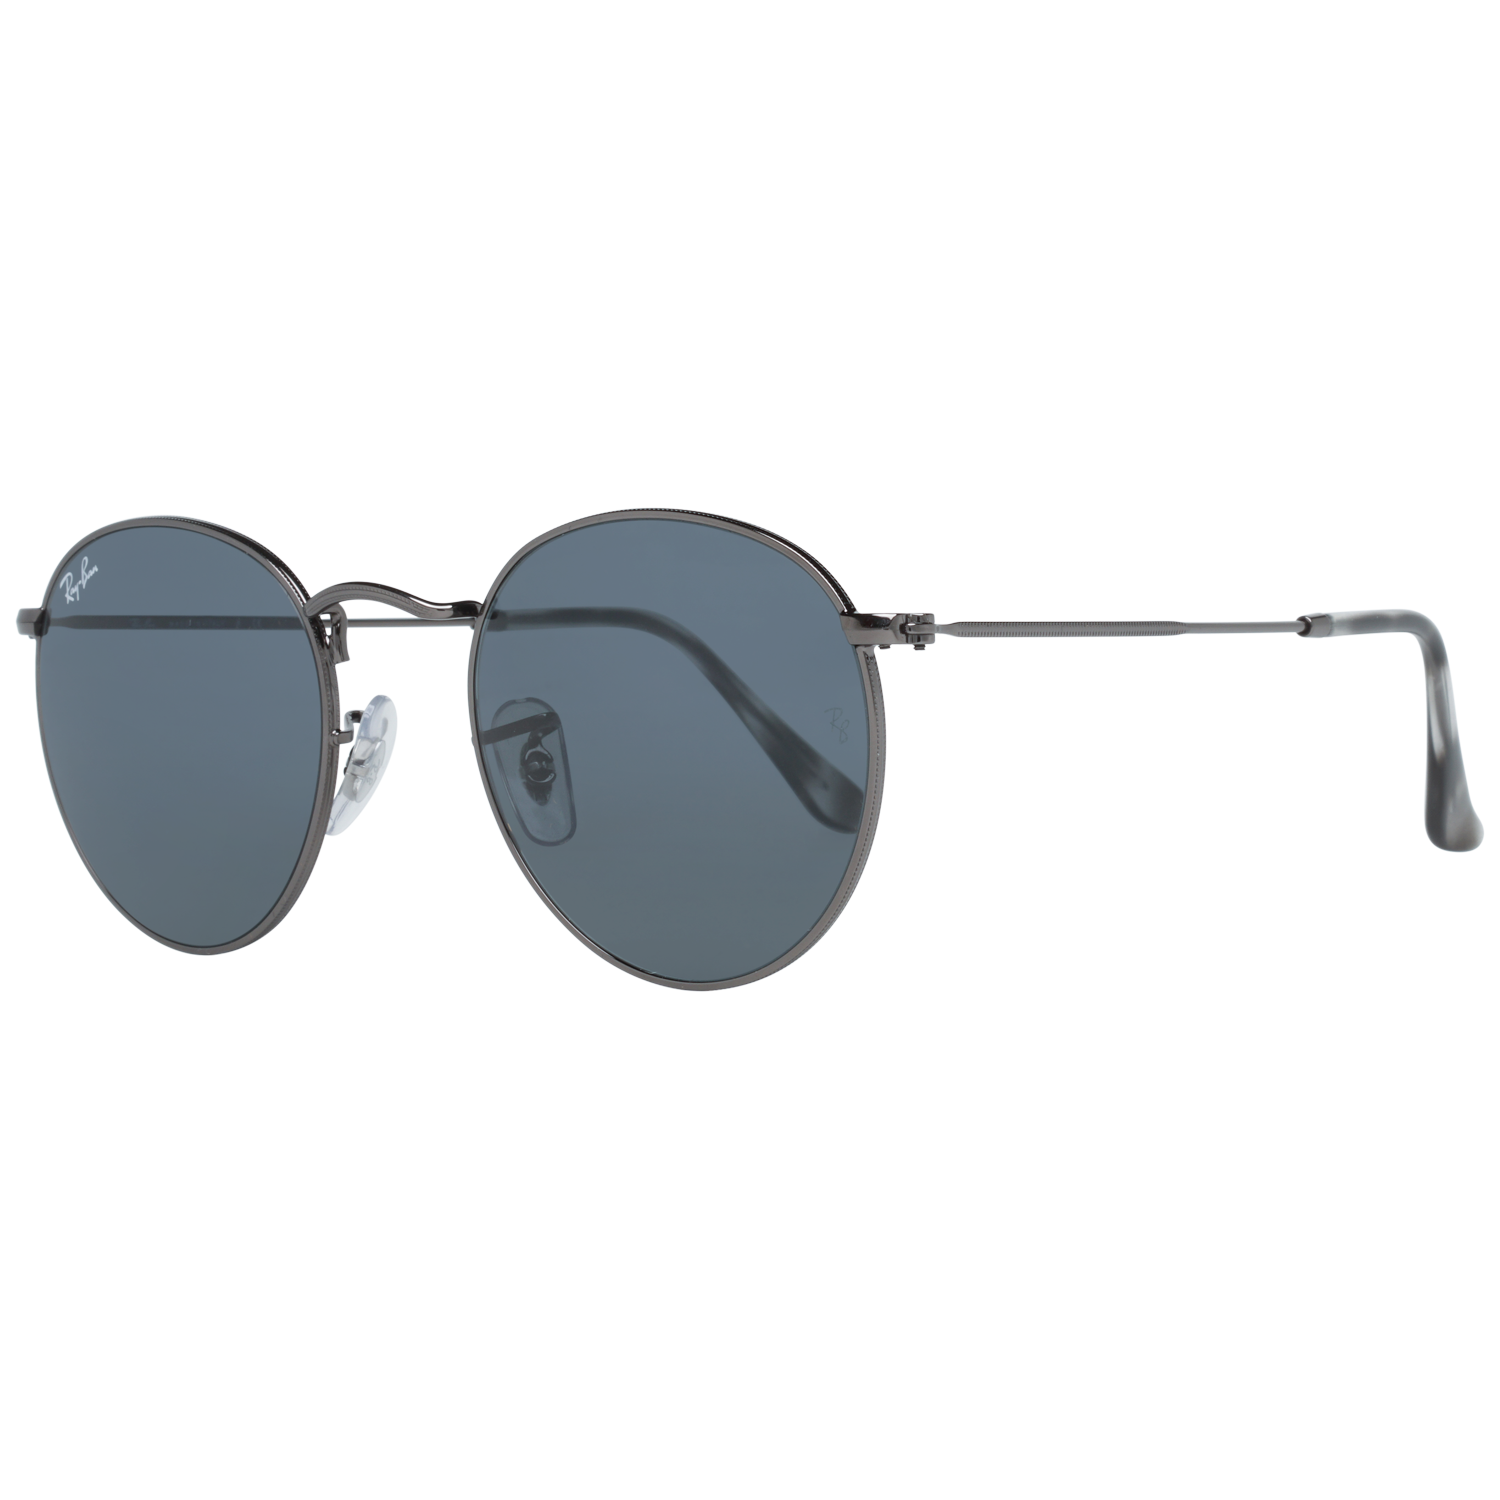 Ray-Ban Sunglasses RB3447 9171R5 50 Silver